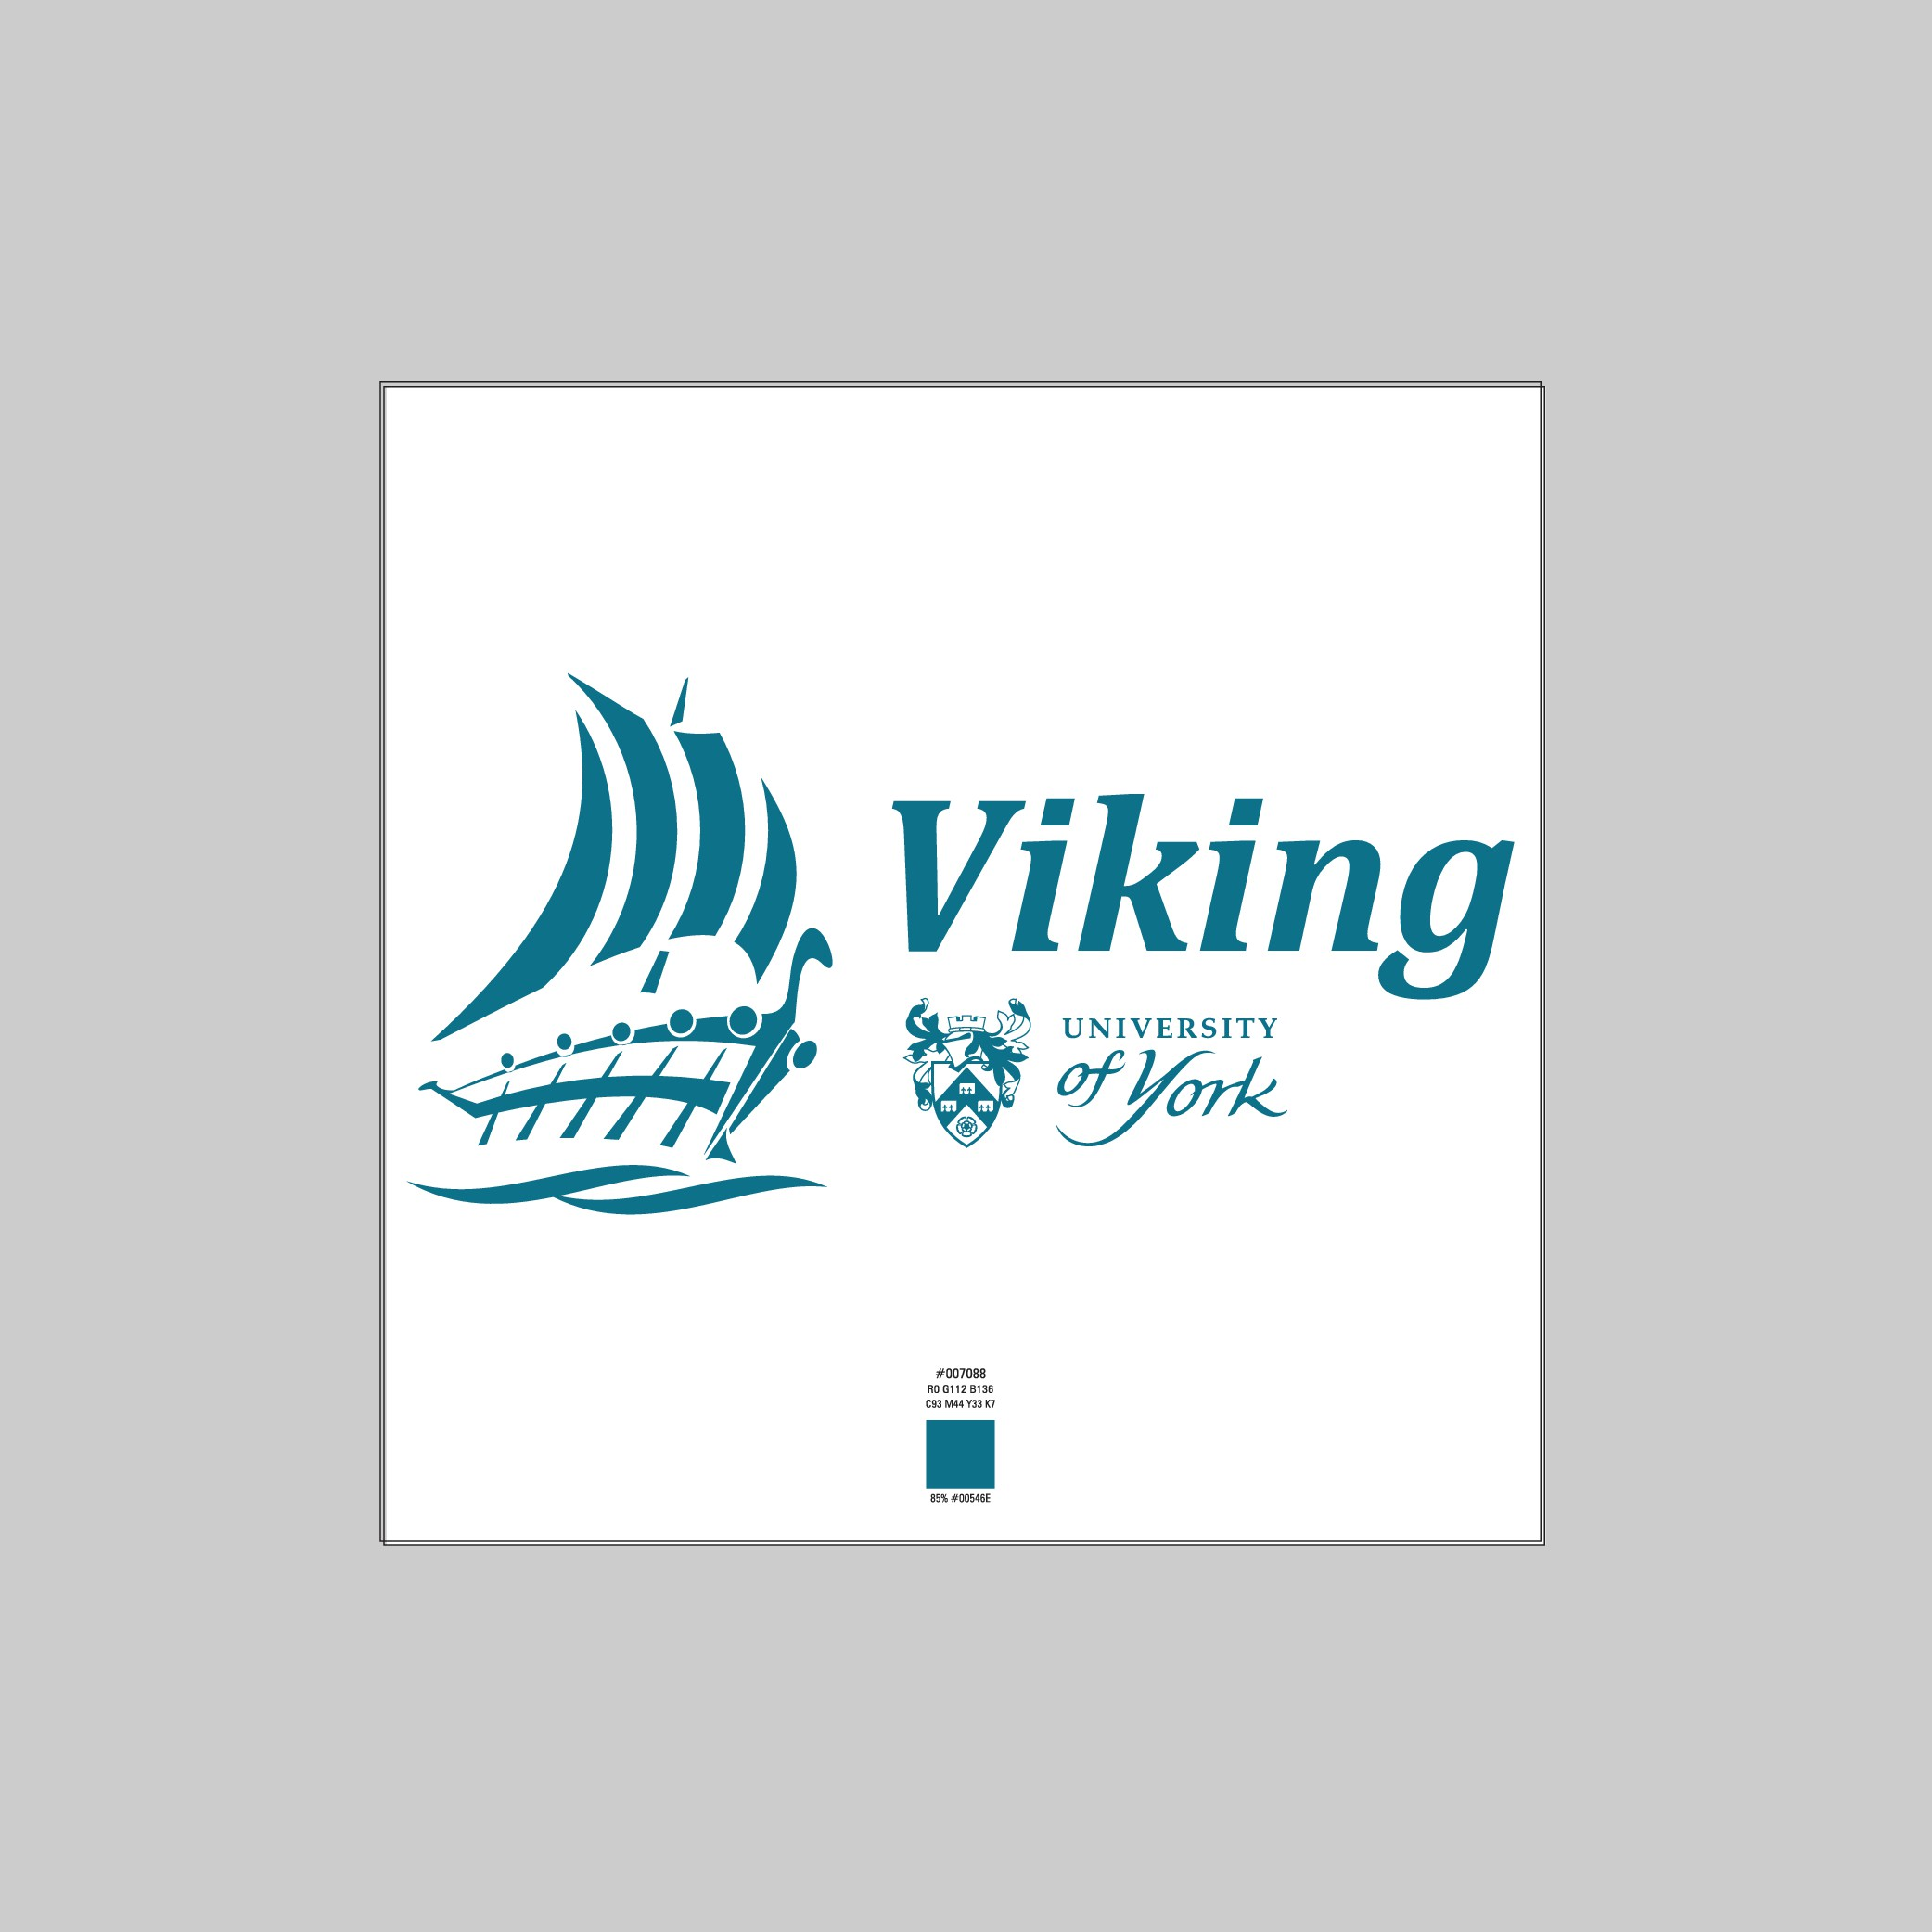 Design a powerful logo for the Viking Supercomputing Cluster